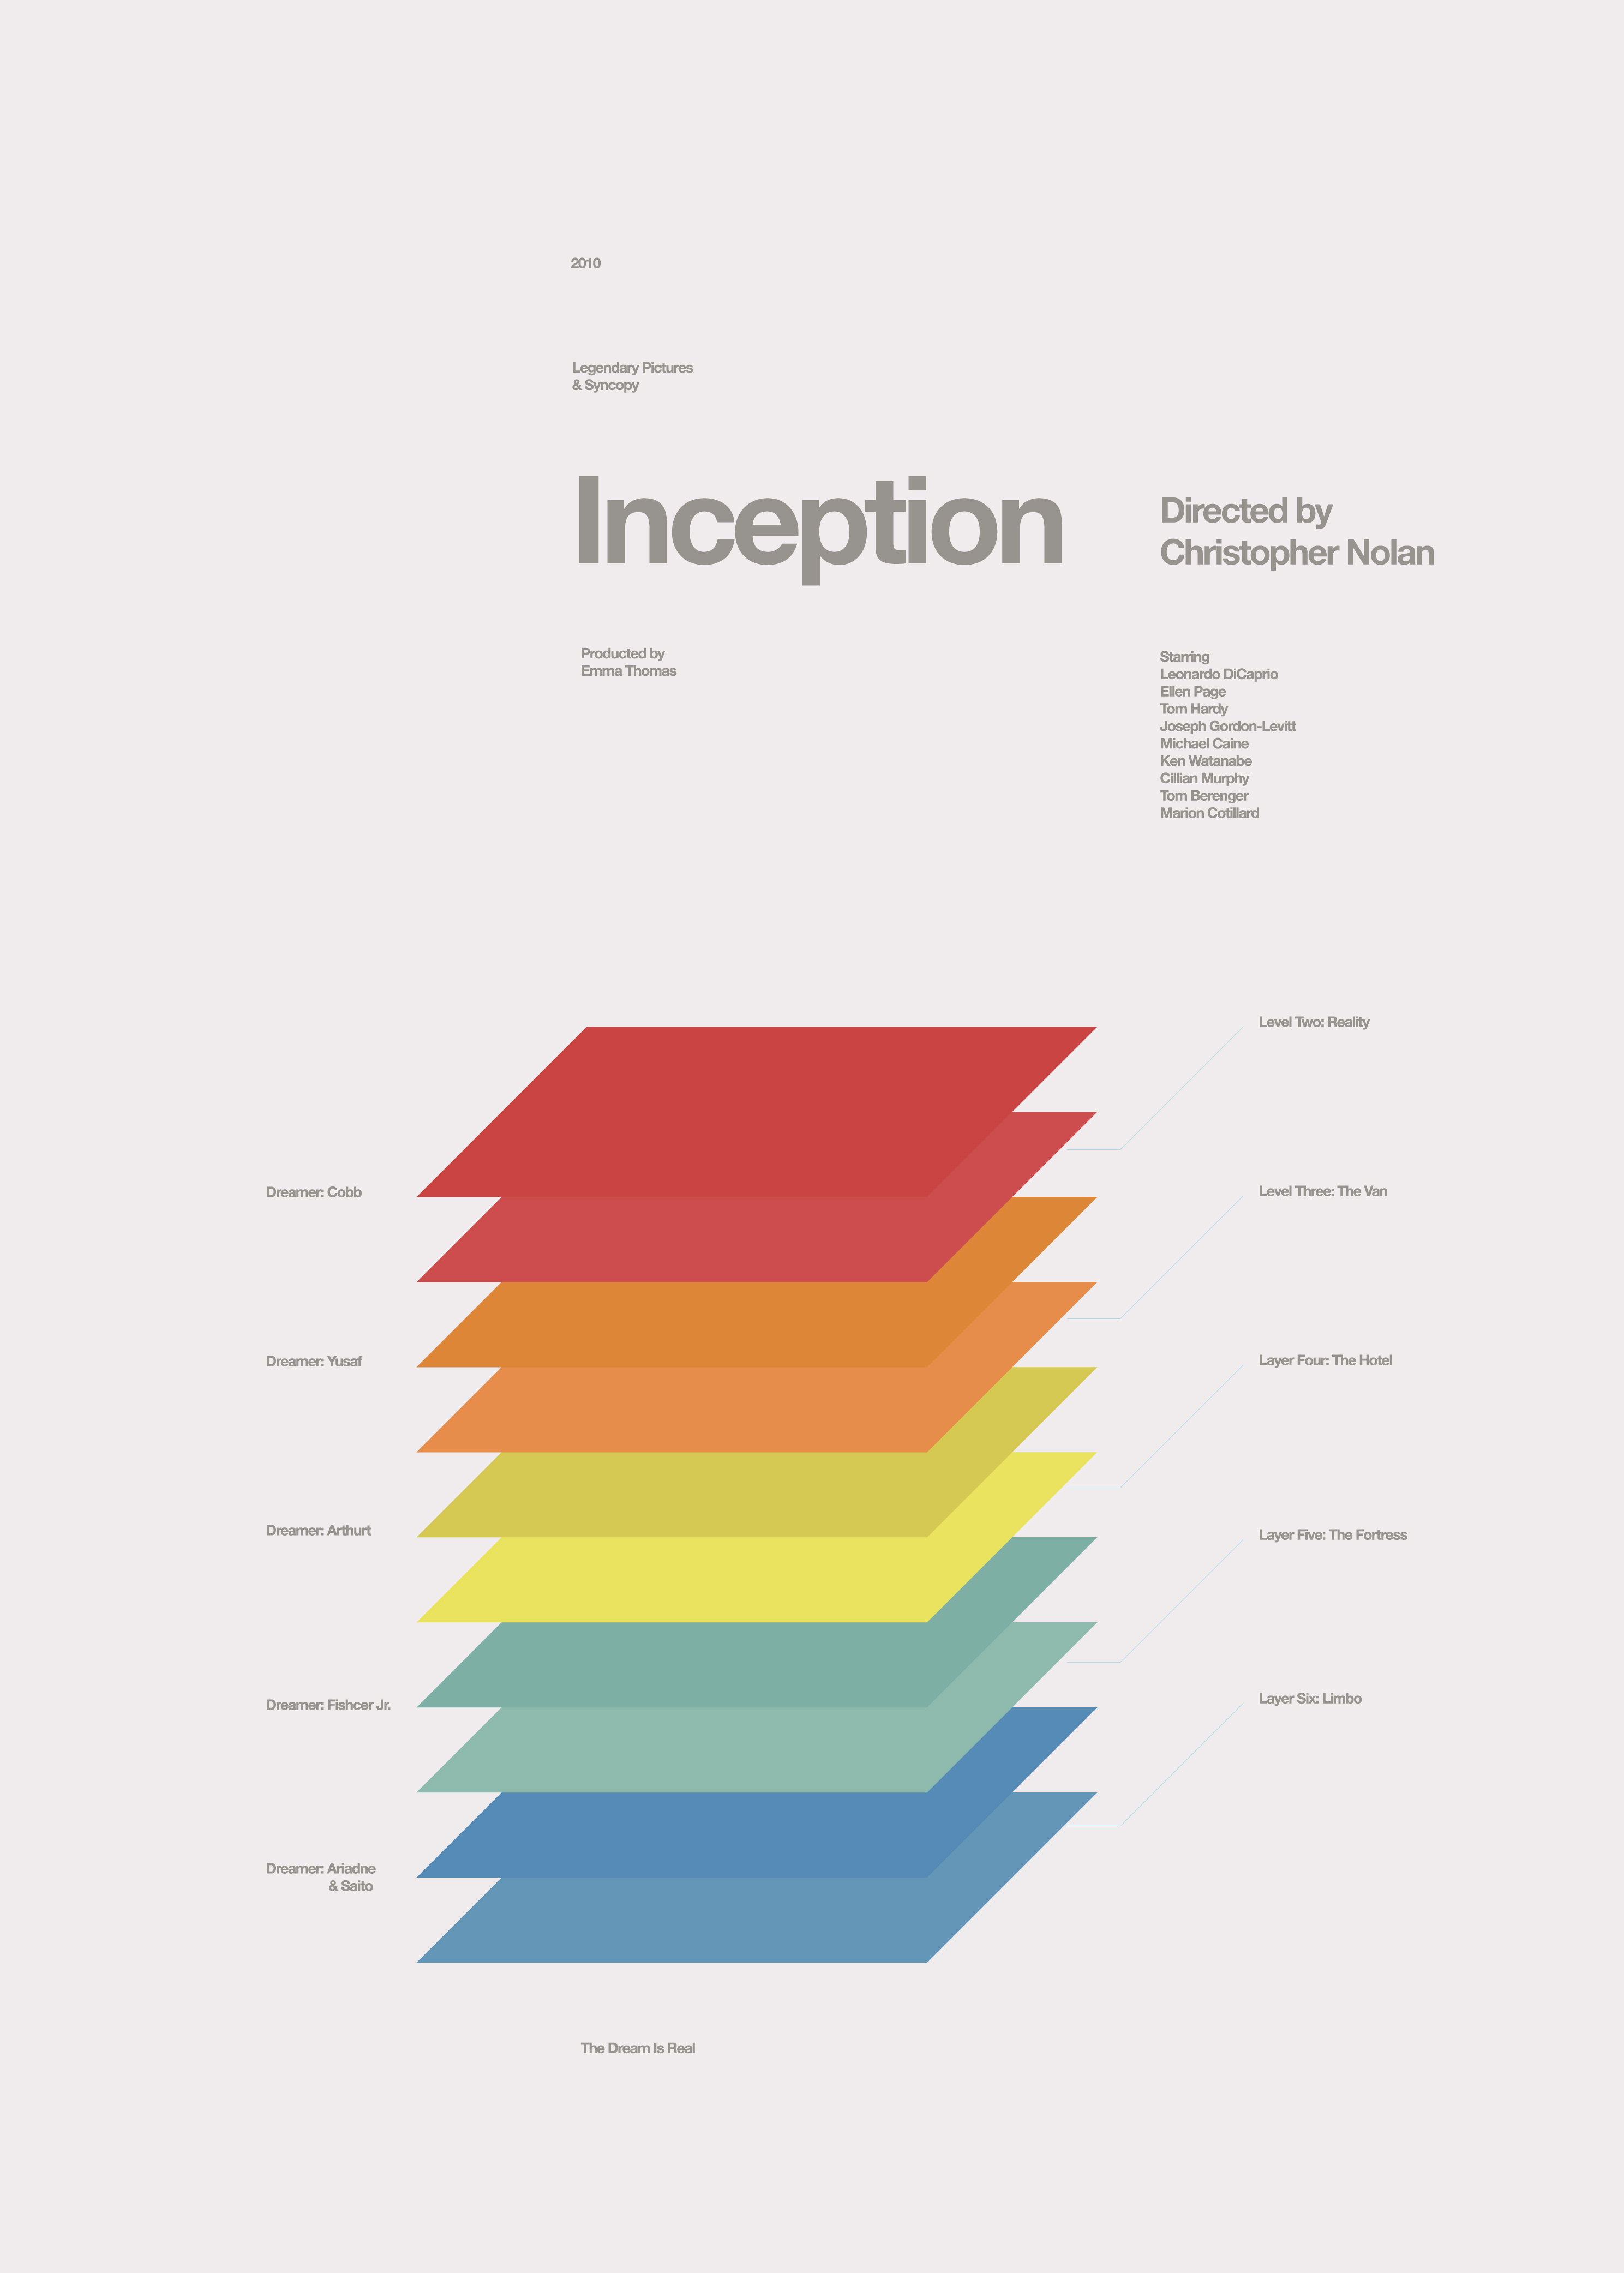 the guy who designed minimalist movie posters every day for a year